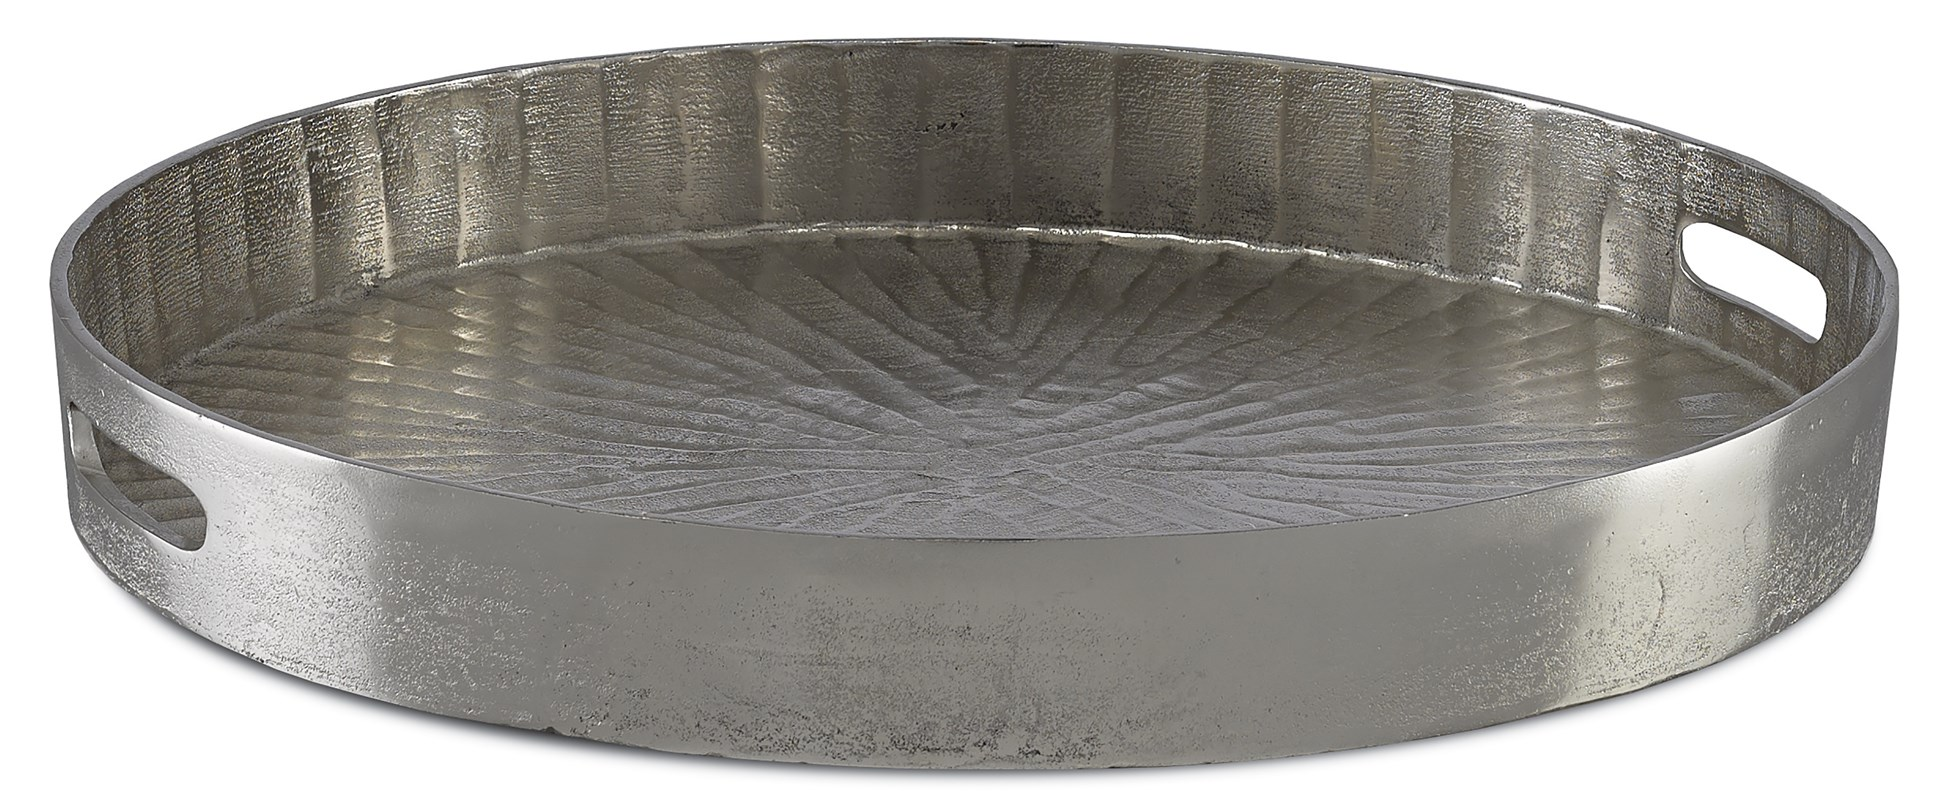 Lux Tray-$395.00